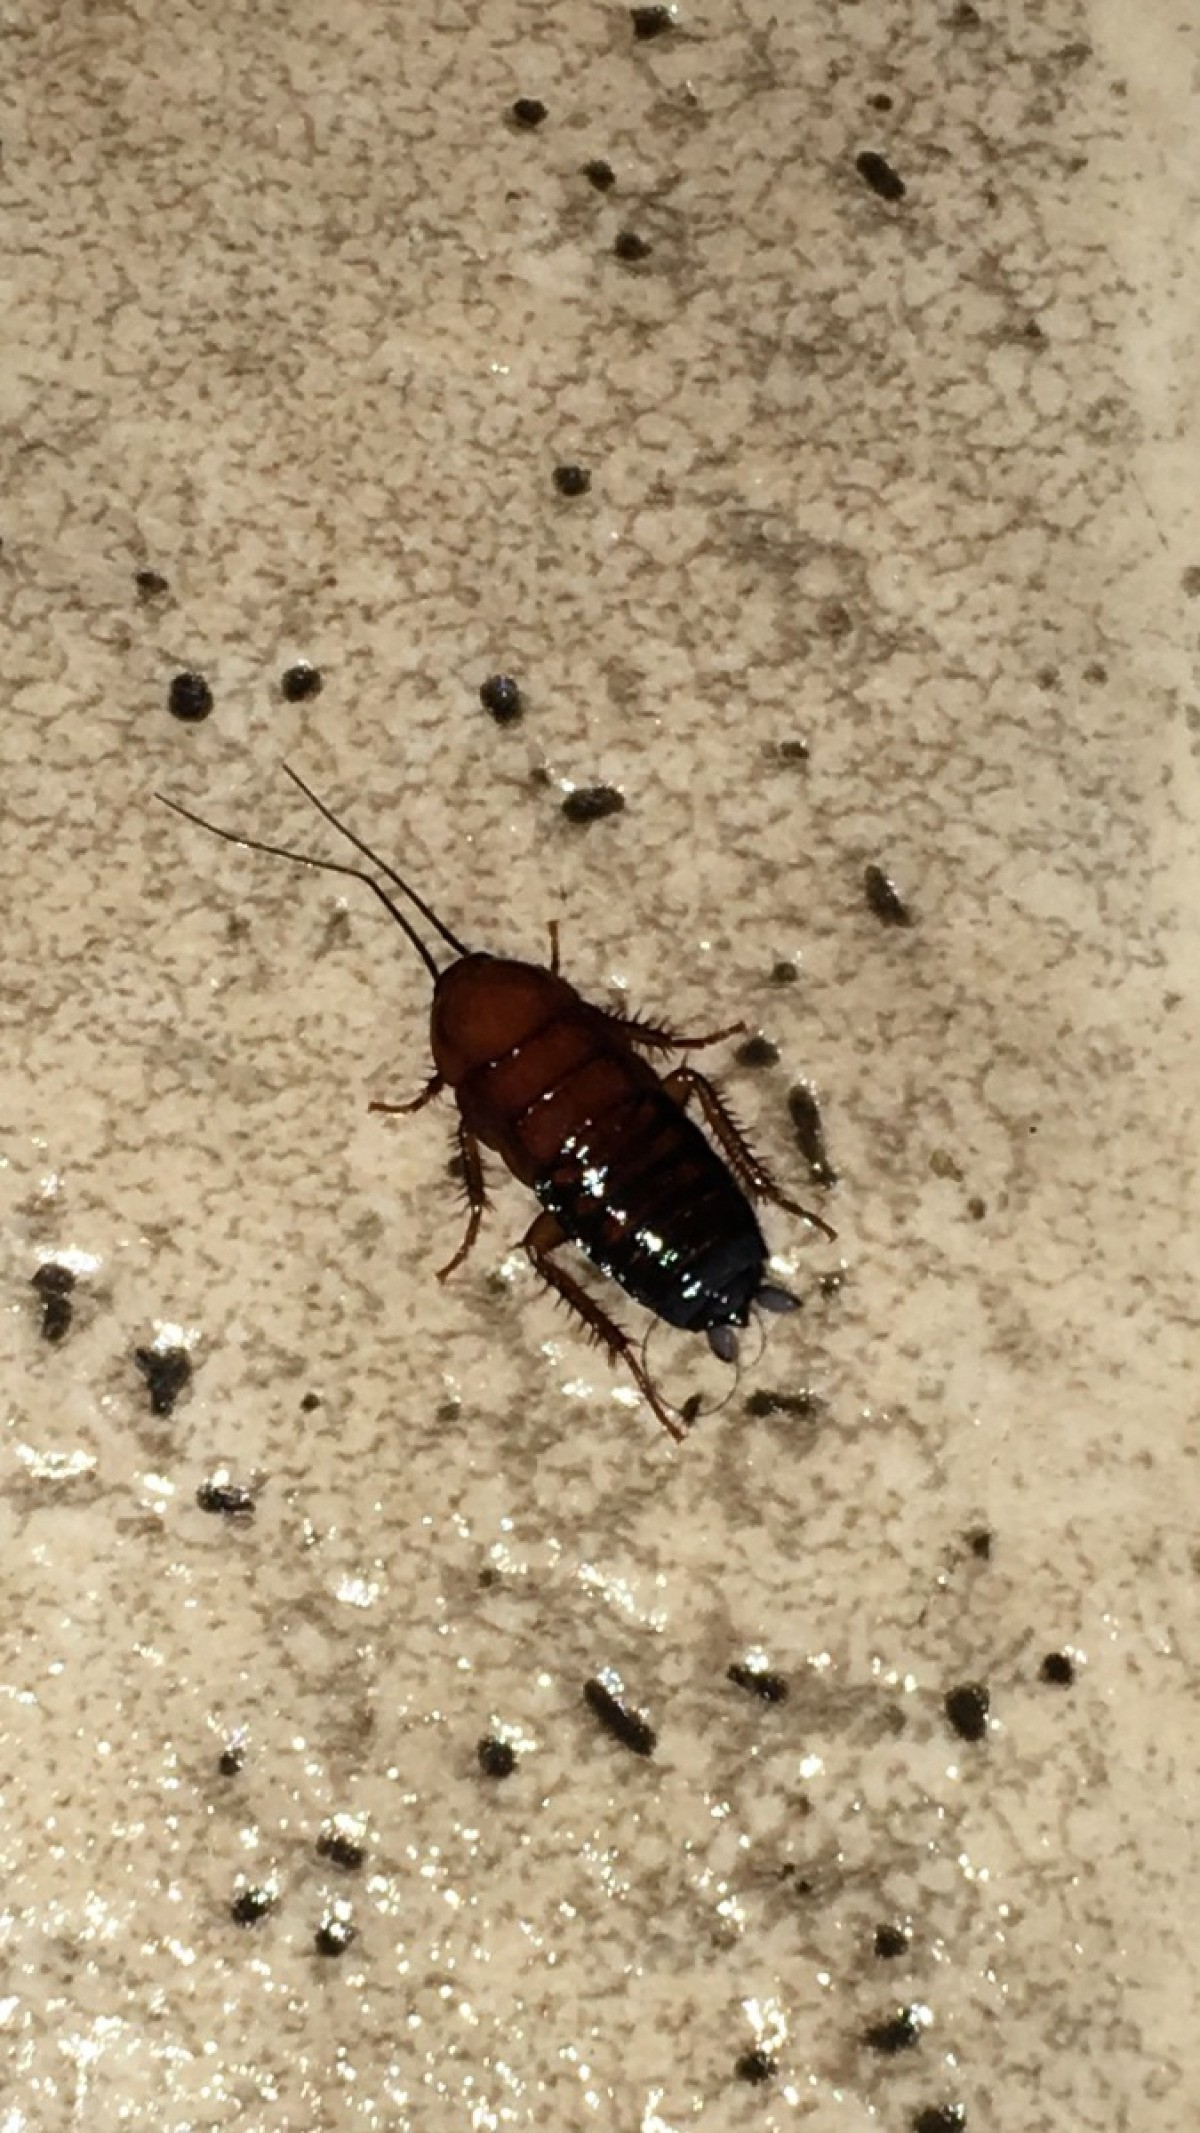 Identifying Bugs In The Kitchen